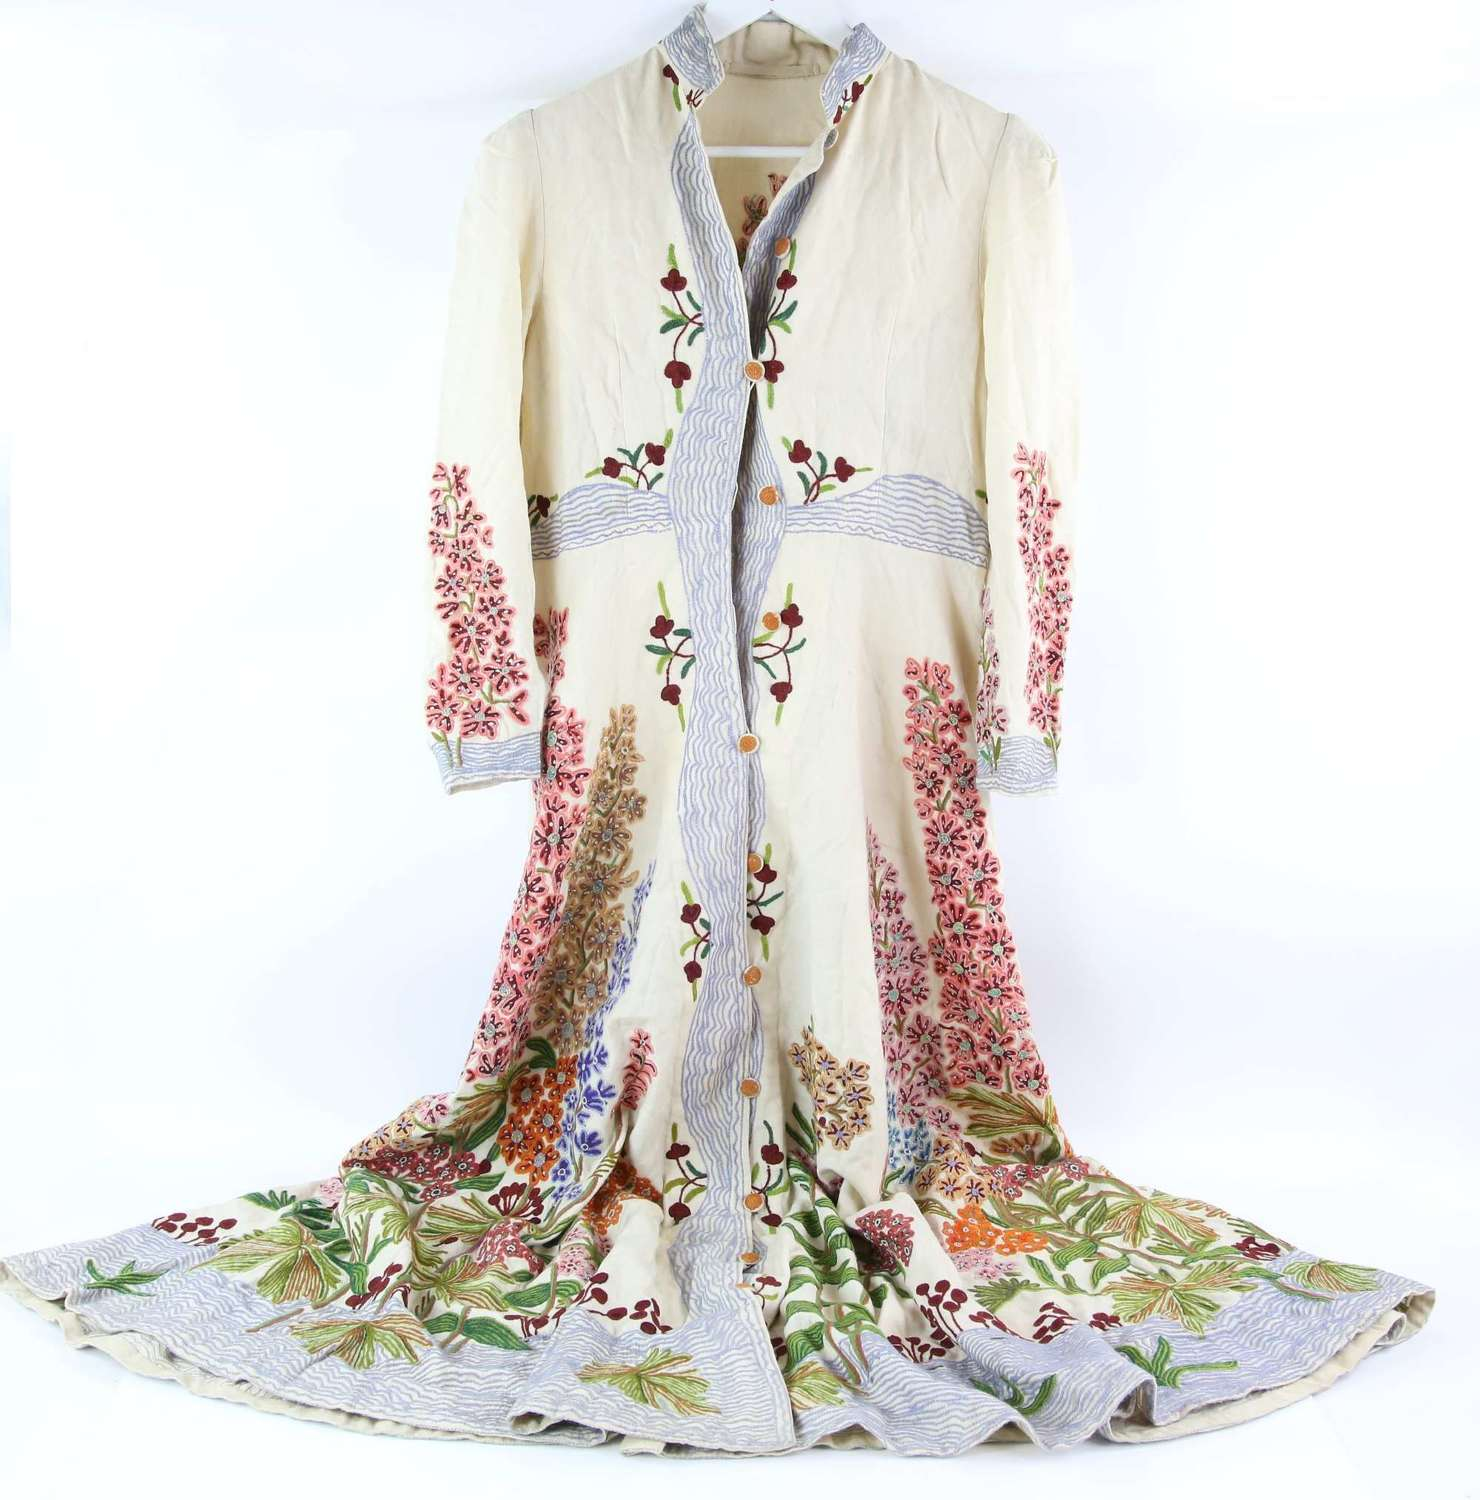 Early 20thC fully embroidered coat dress